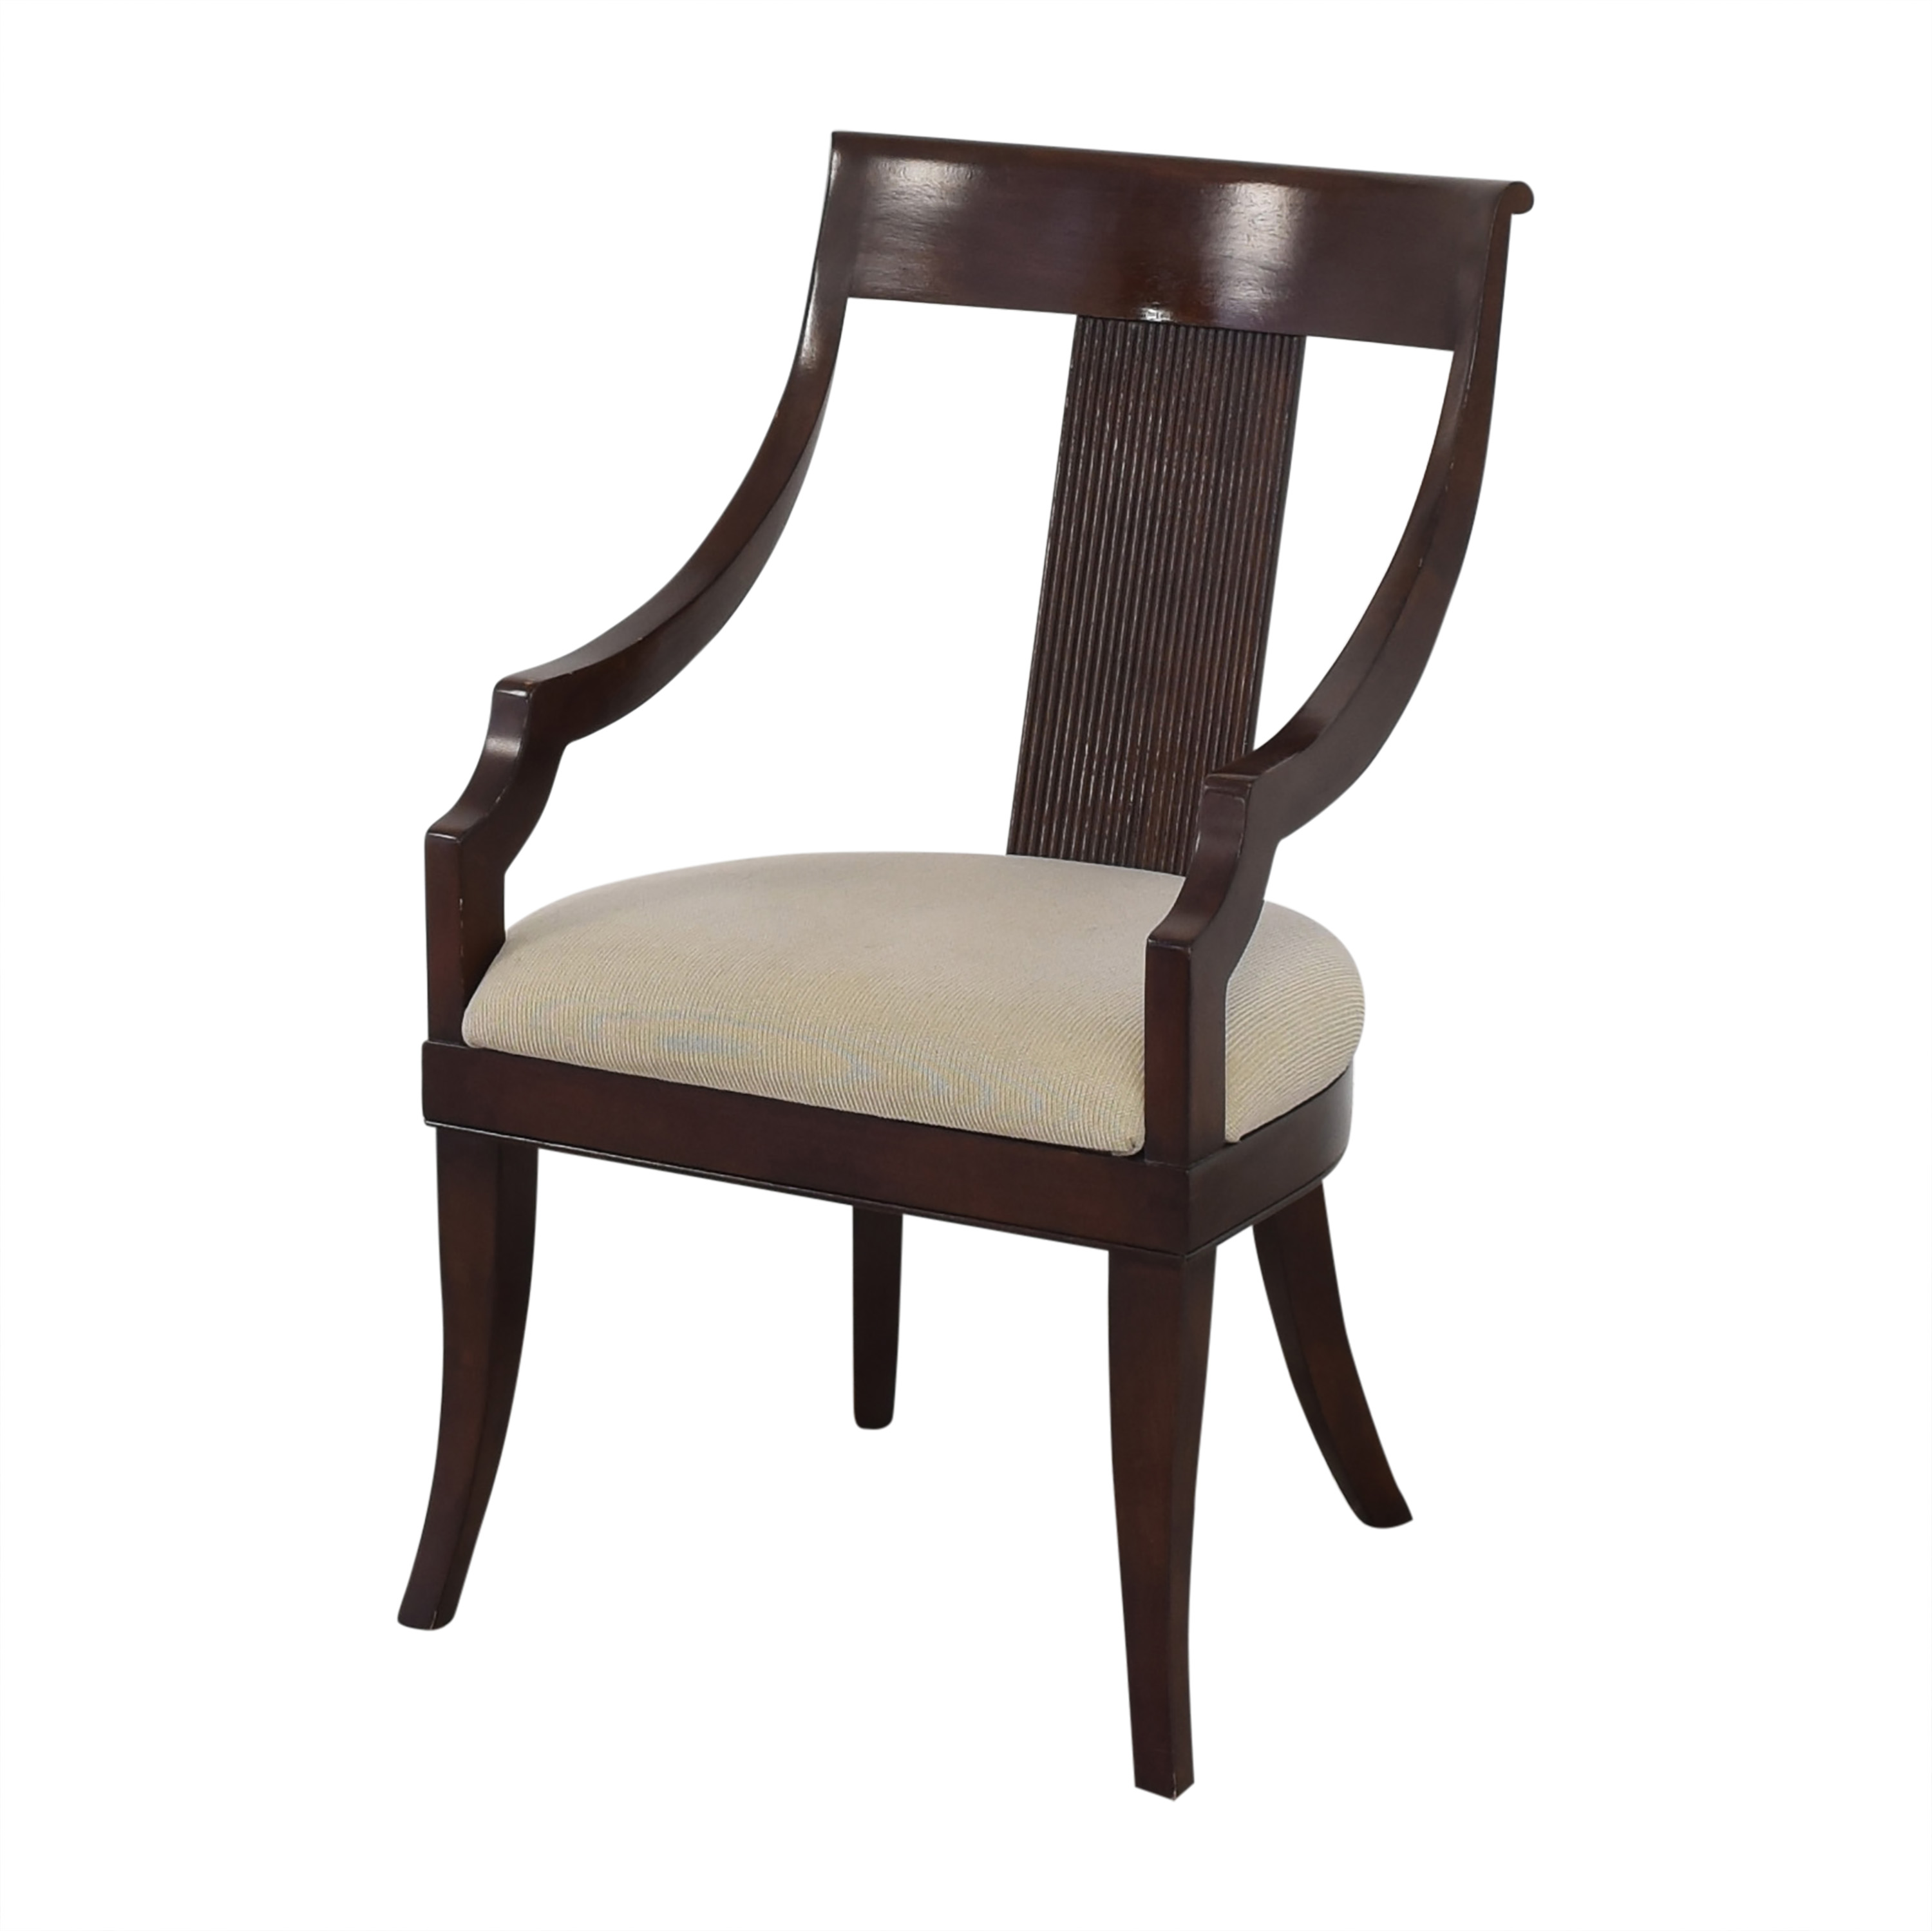 Macy's Macy's Upholstered Dining Chairs